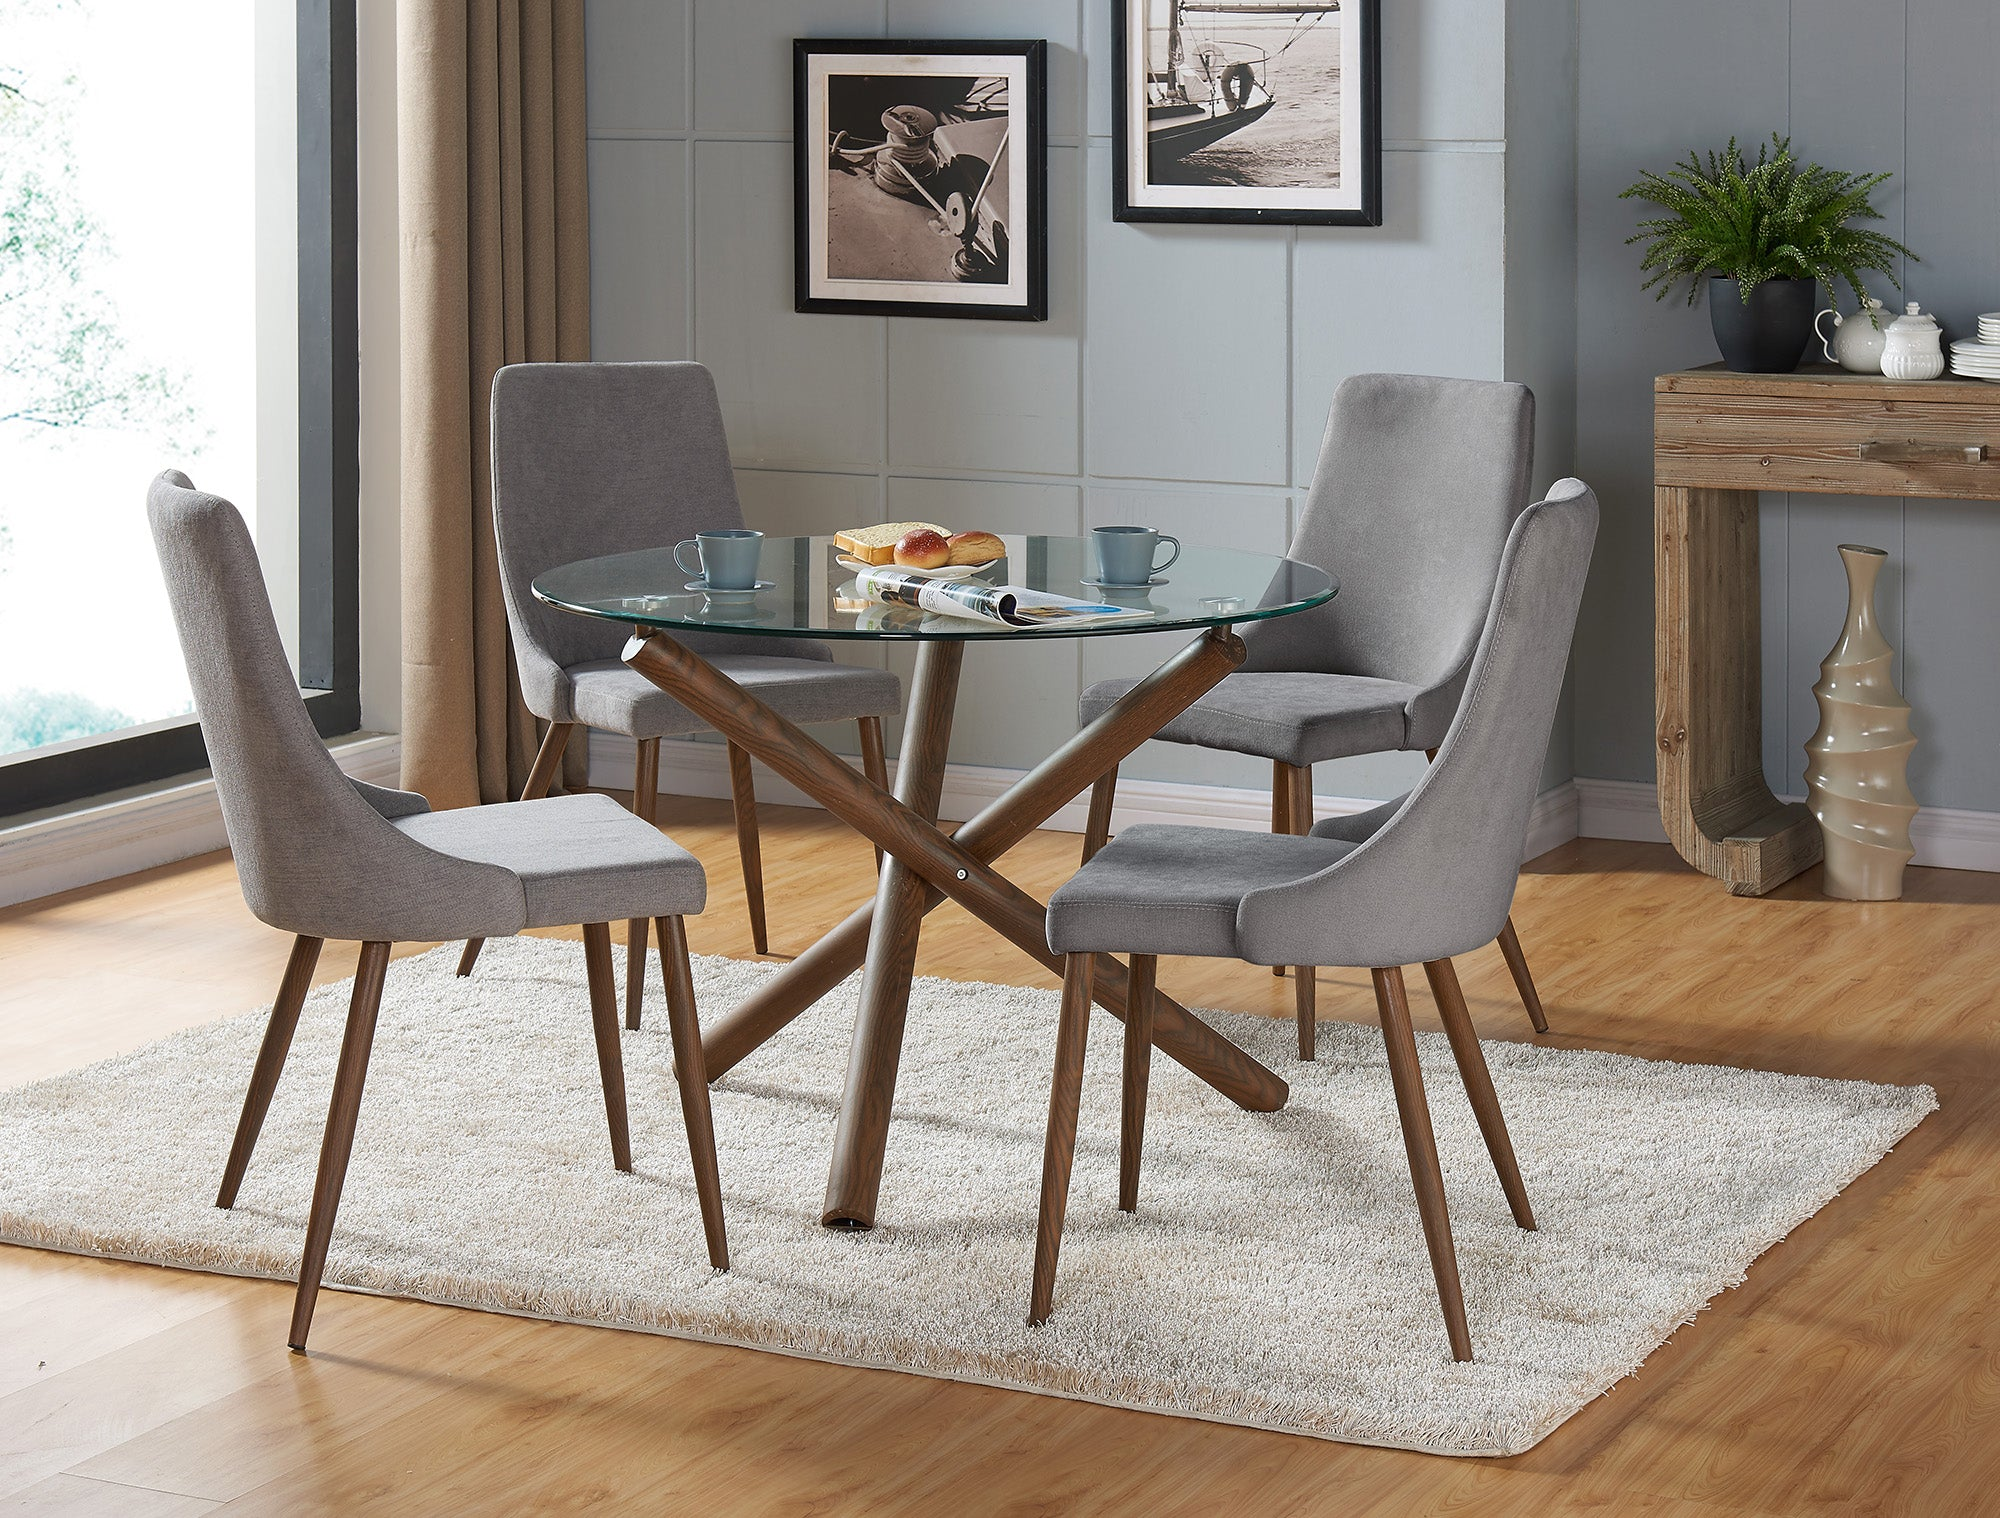 Cora 5PC Dining Set - Walnut (Grey Chairs)